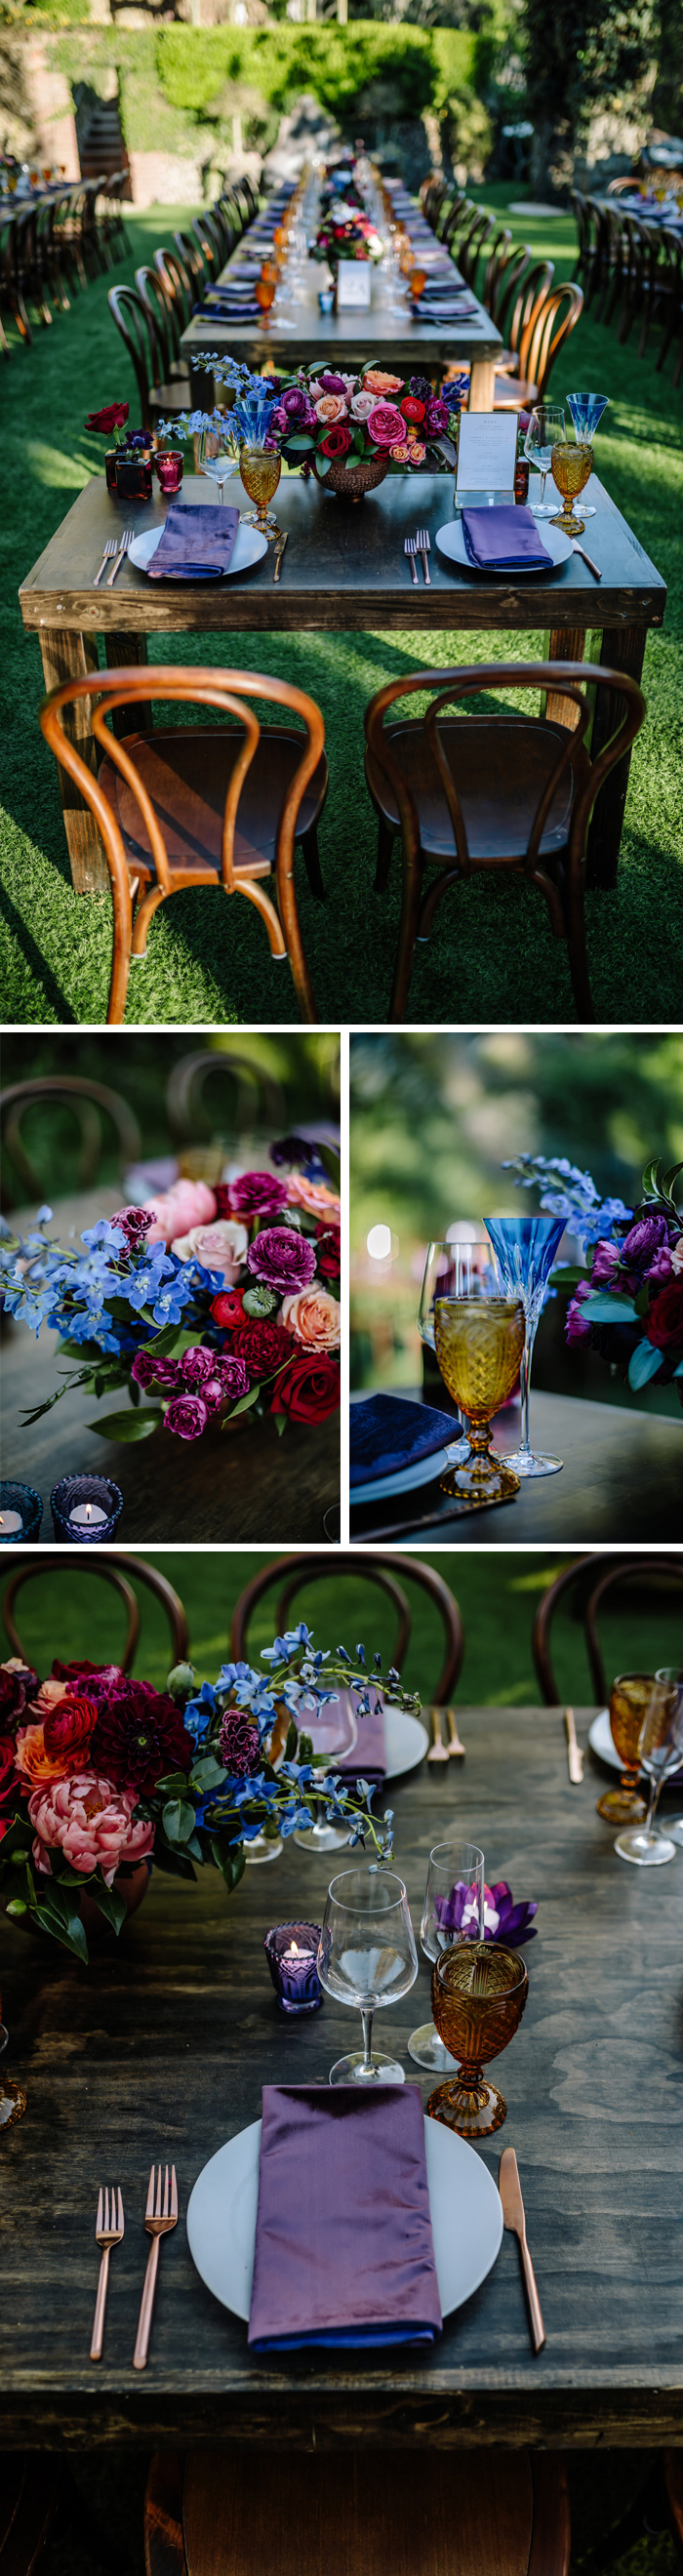 The Houdini Estate wedding dinner reception featuring moody florals and jewel toned dinnerware.